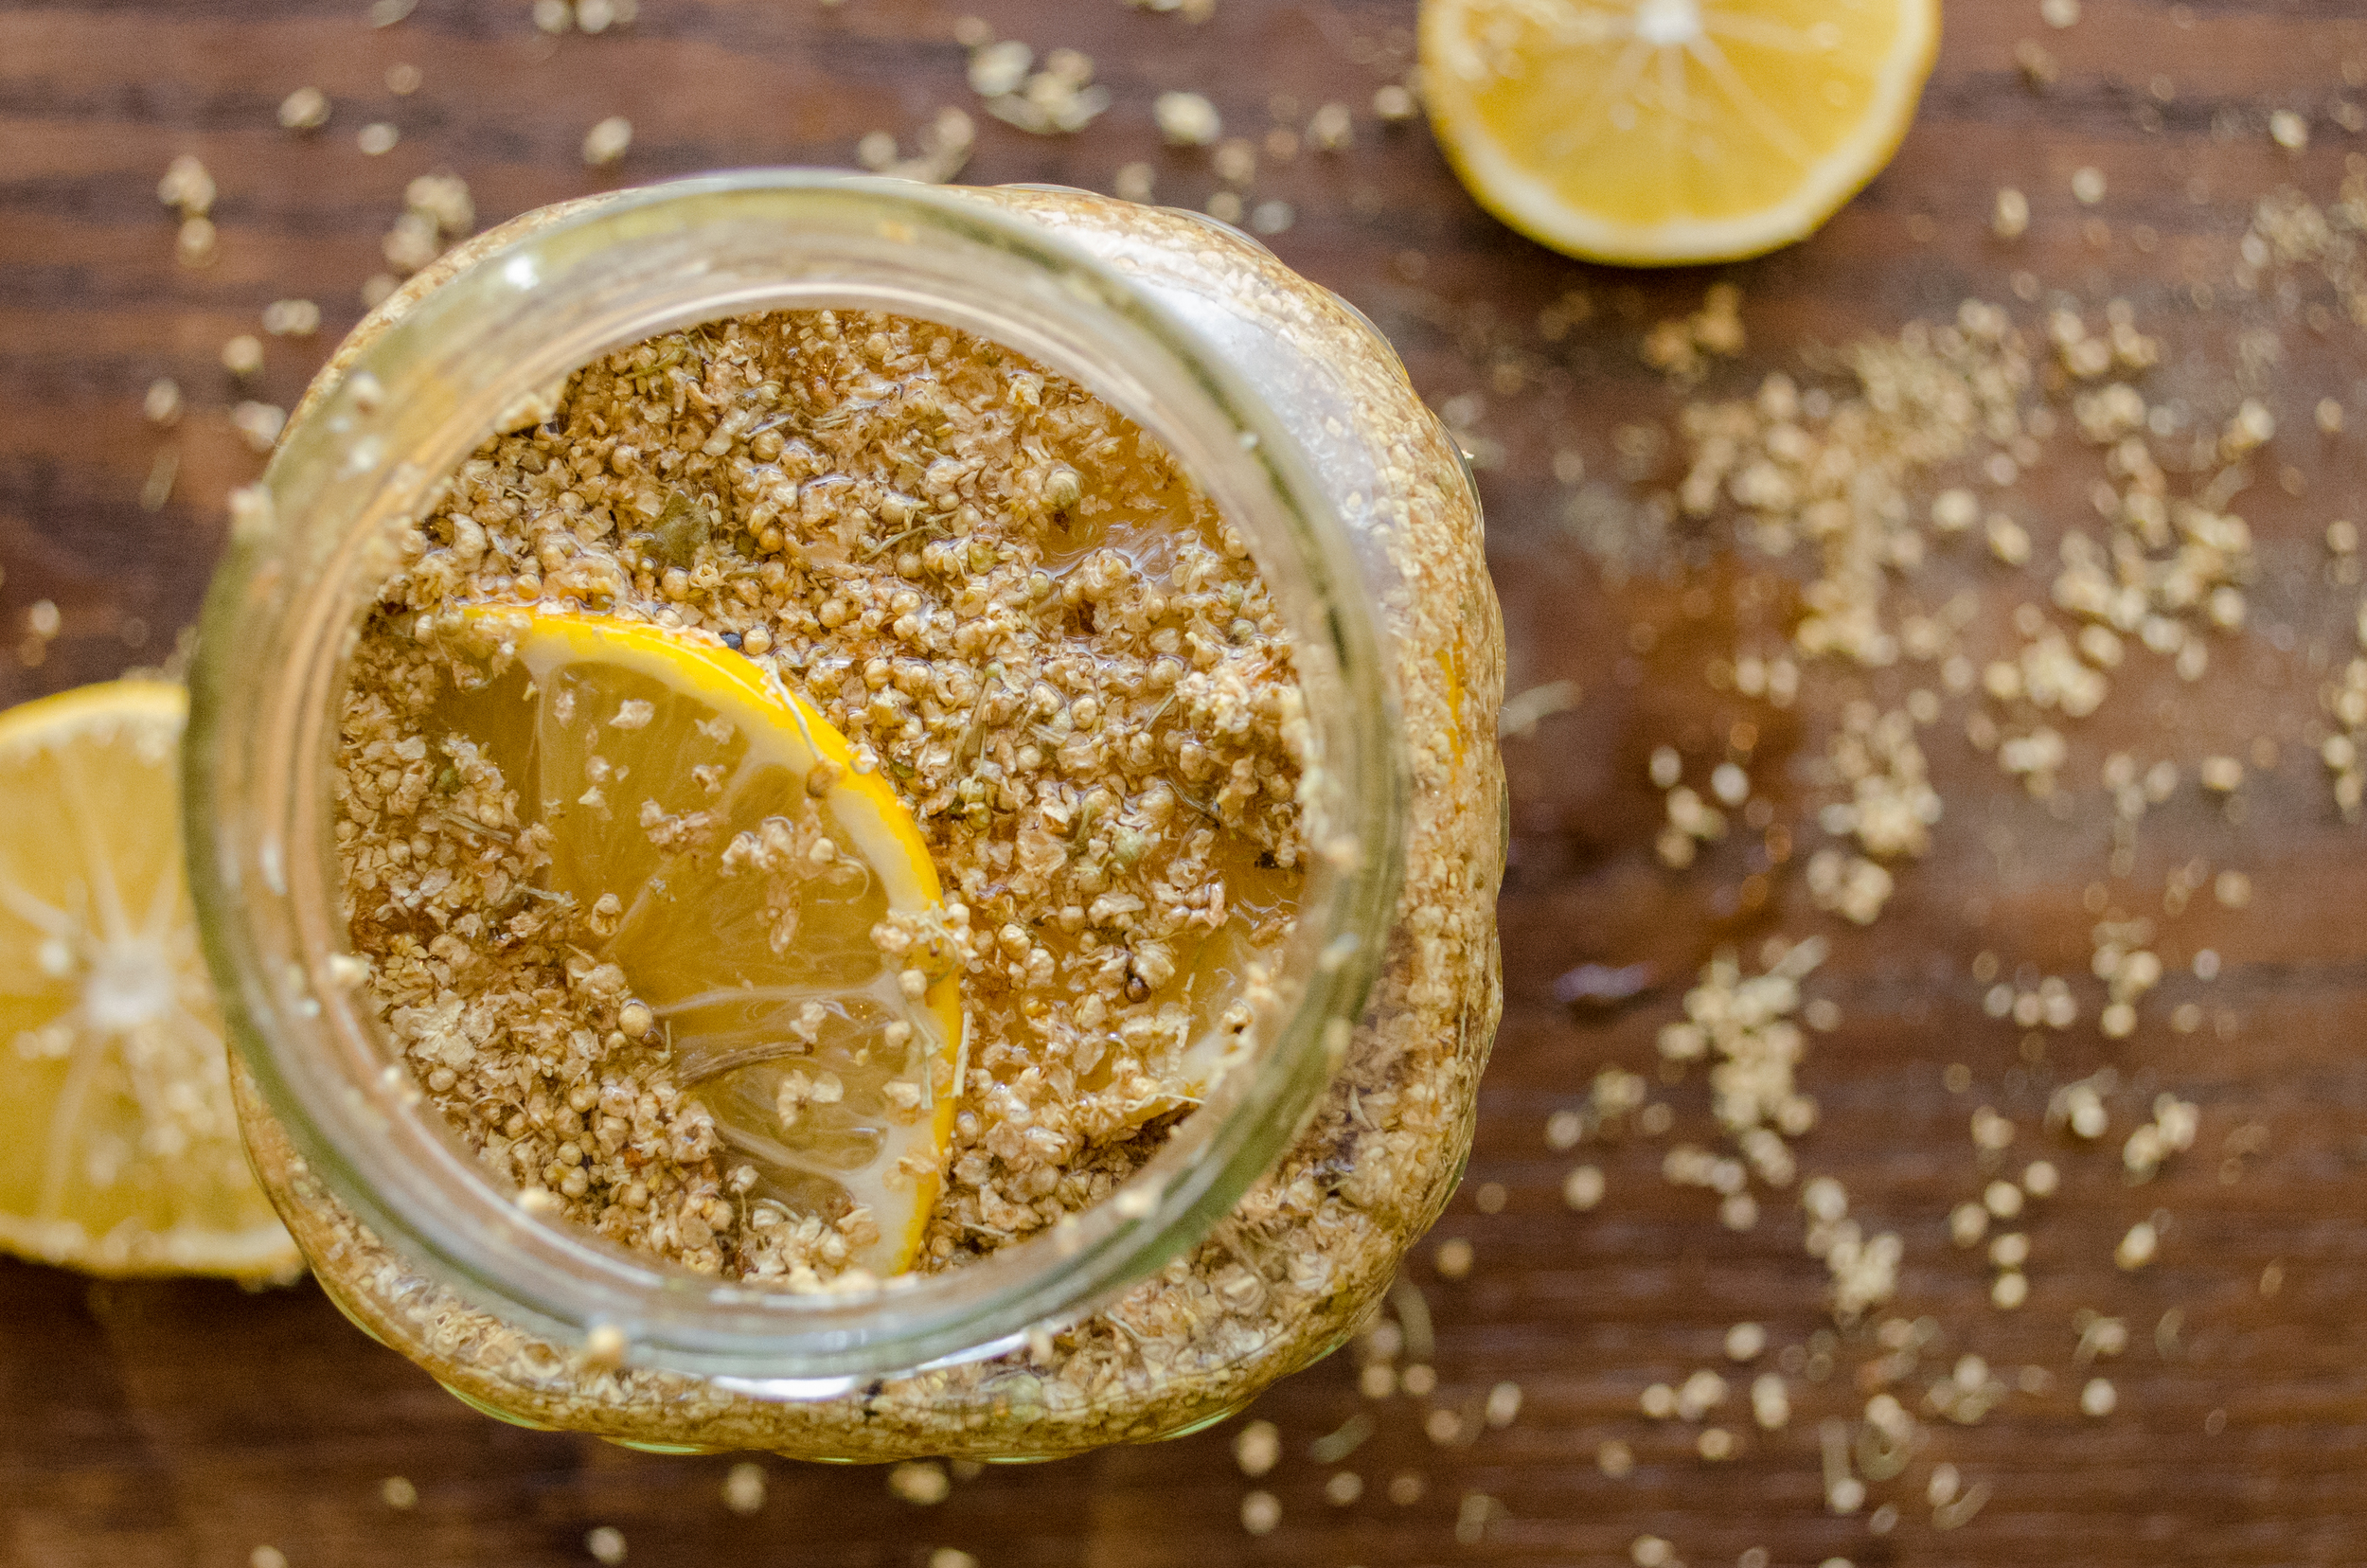 DIY St Germain elderflower cordial